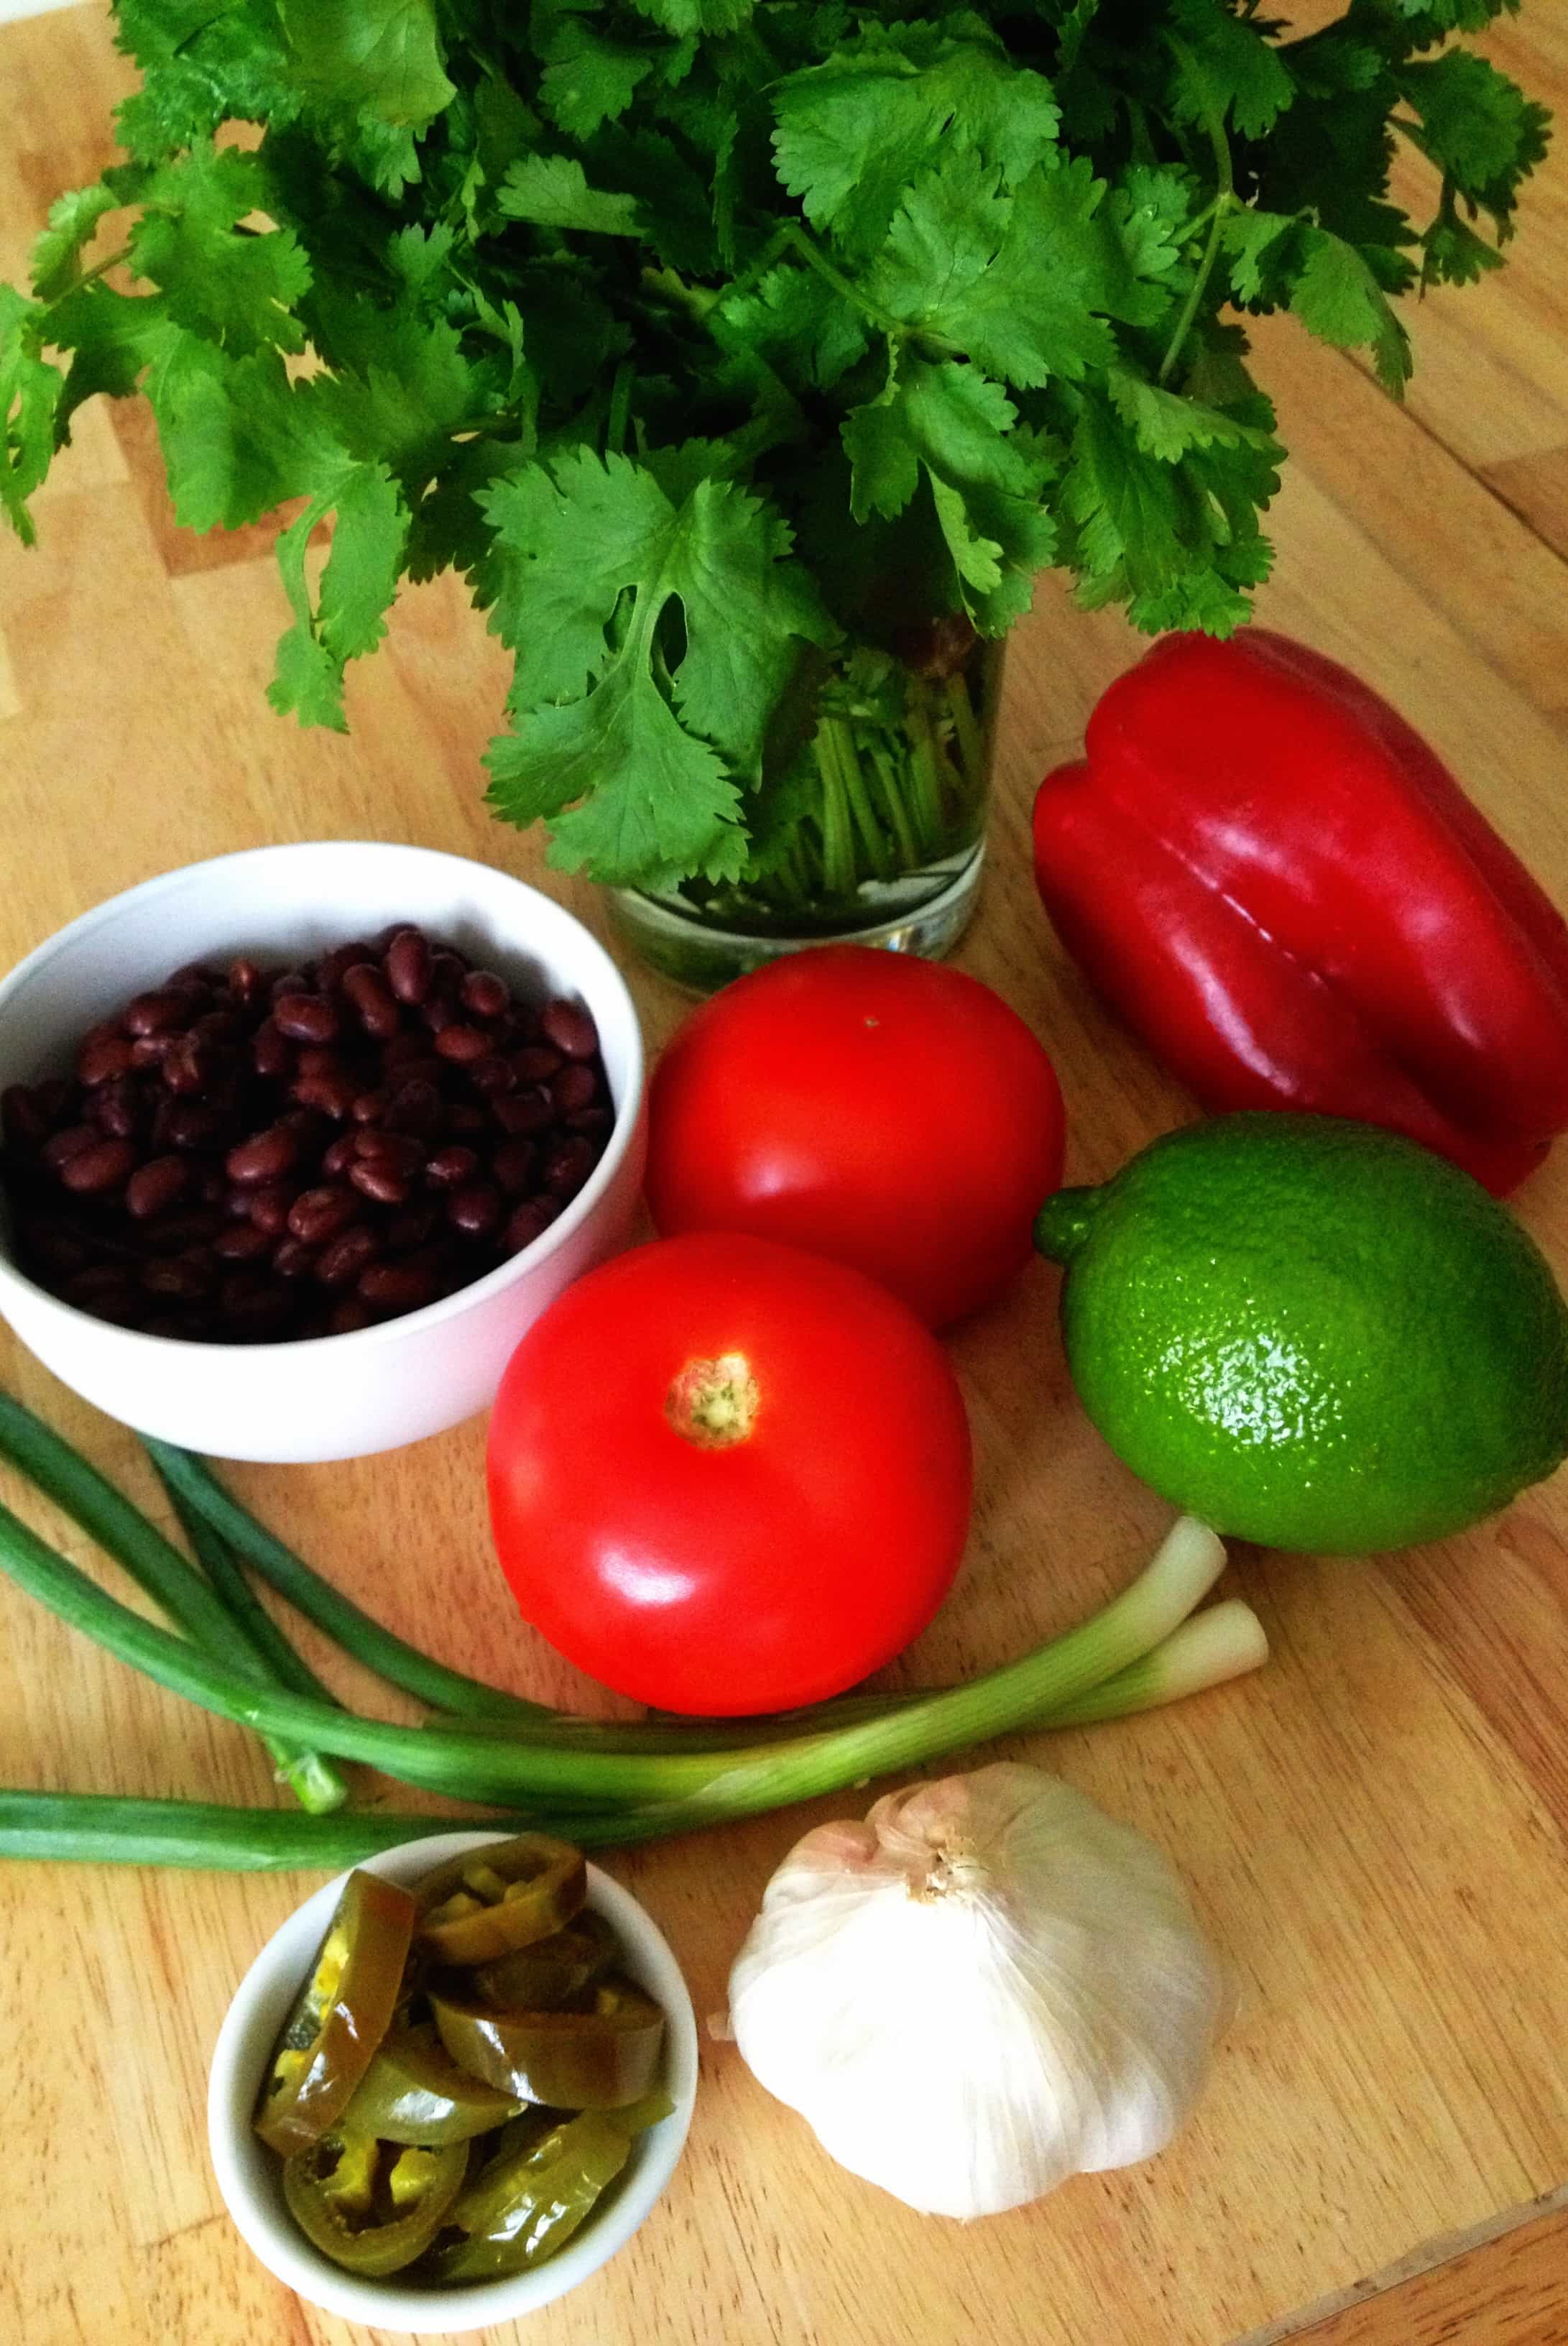 Fresh ingredients (tomatoes, onions, garlic, peppers) for black bean salsa on wooden board